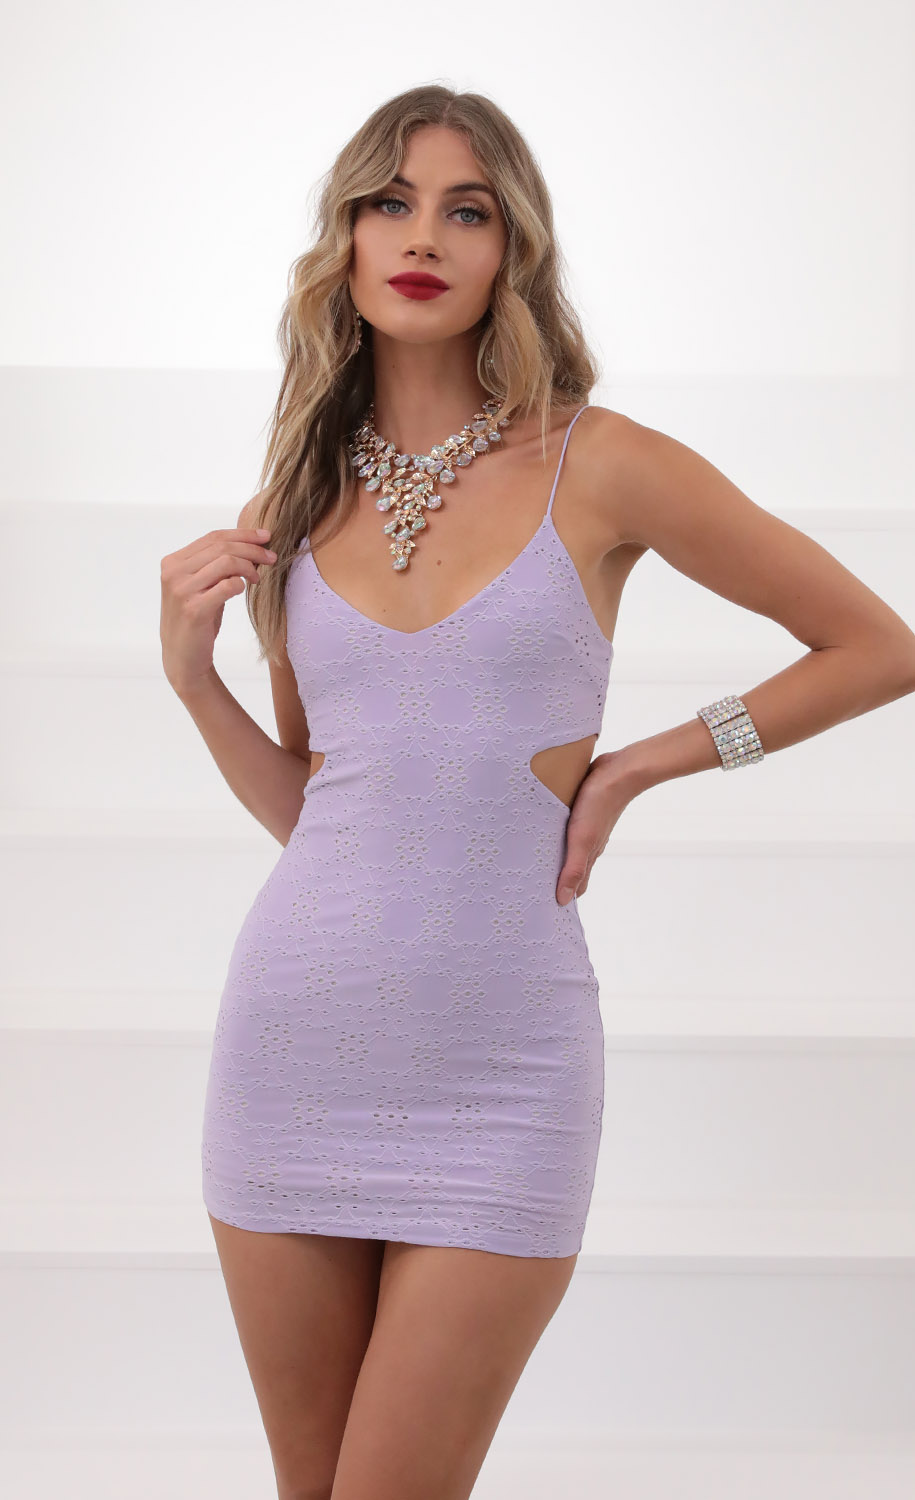 Eyelet Hourglass Dress in Lavender